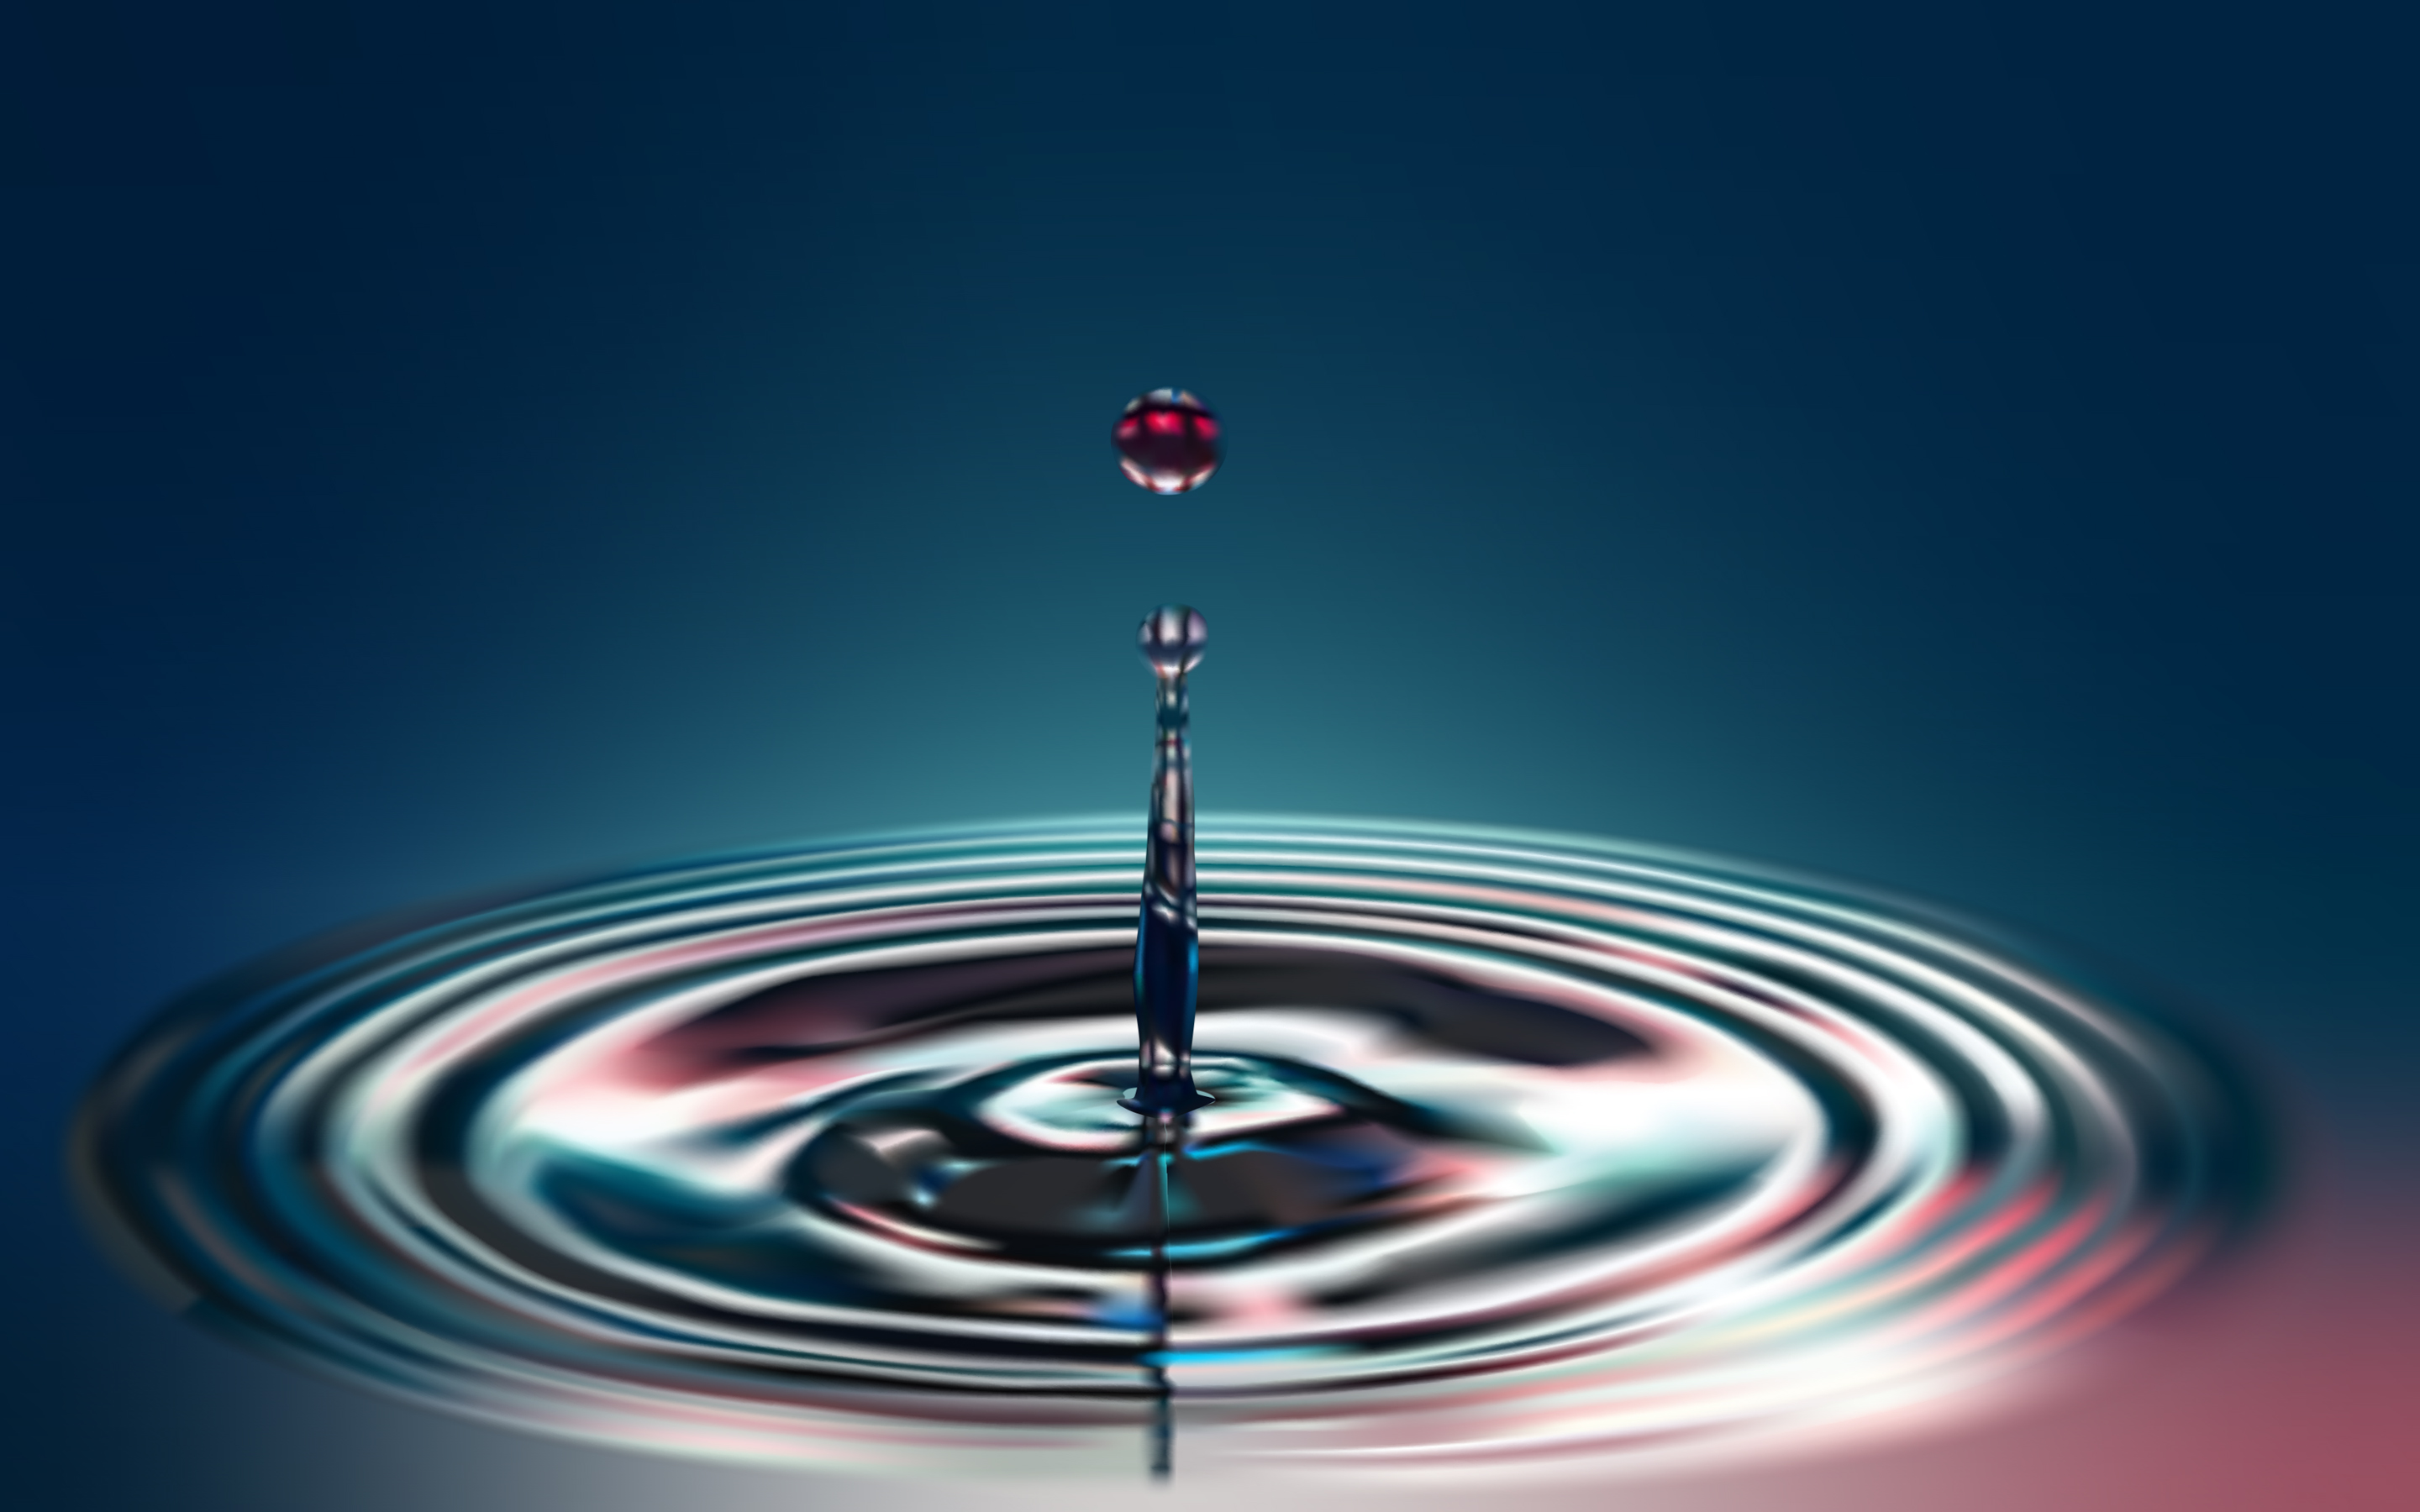 Animated Waterfall Wallpaper 17 Water Drop Hd Wallpapers Backgrounds Wallpaper Abyss